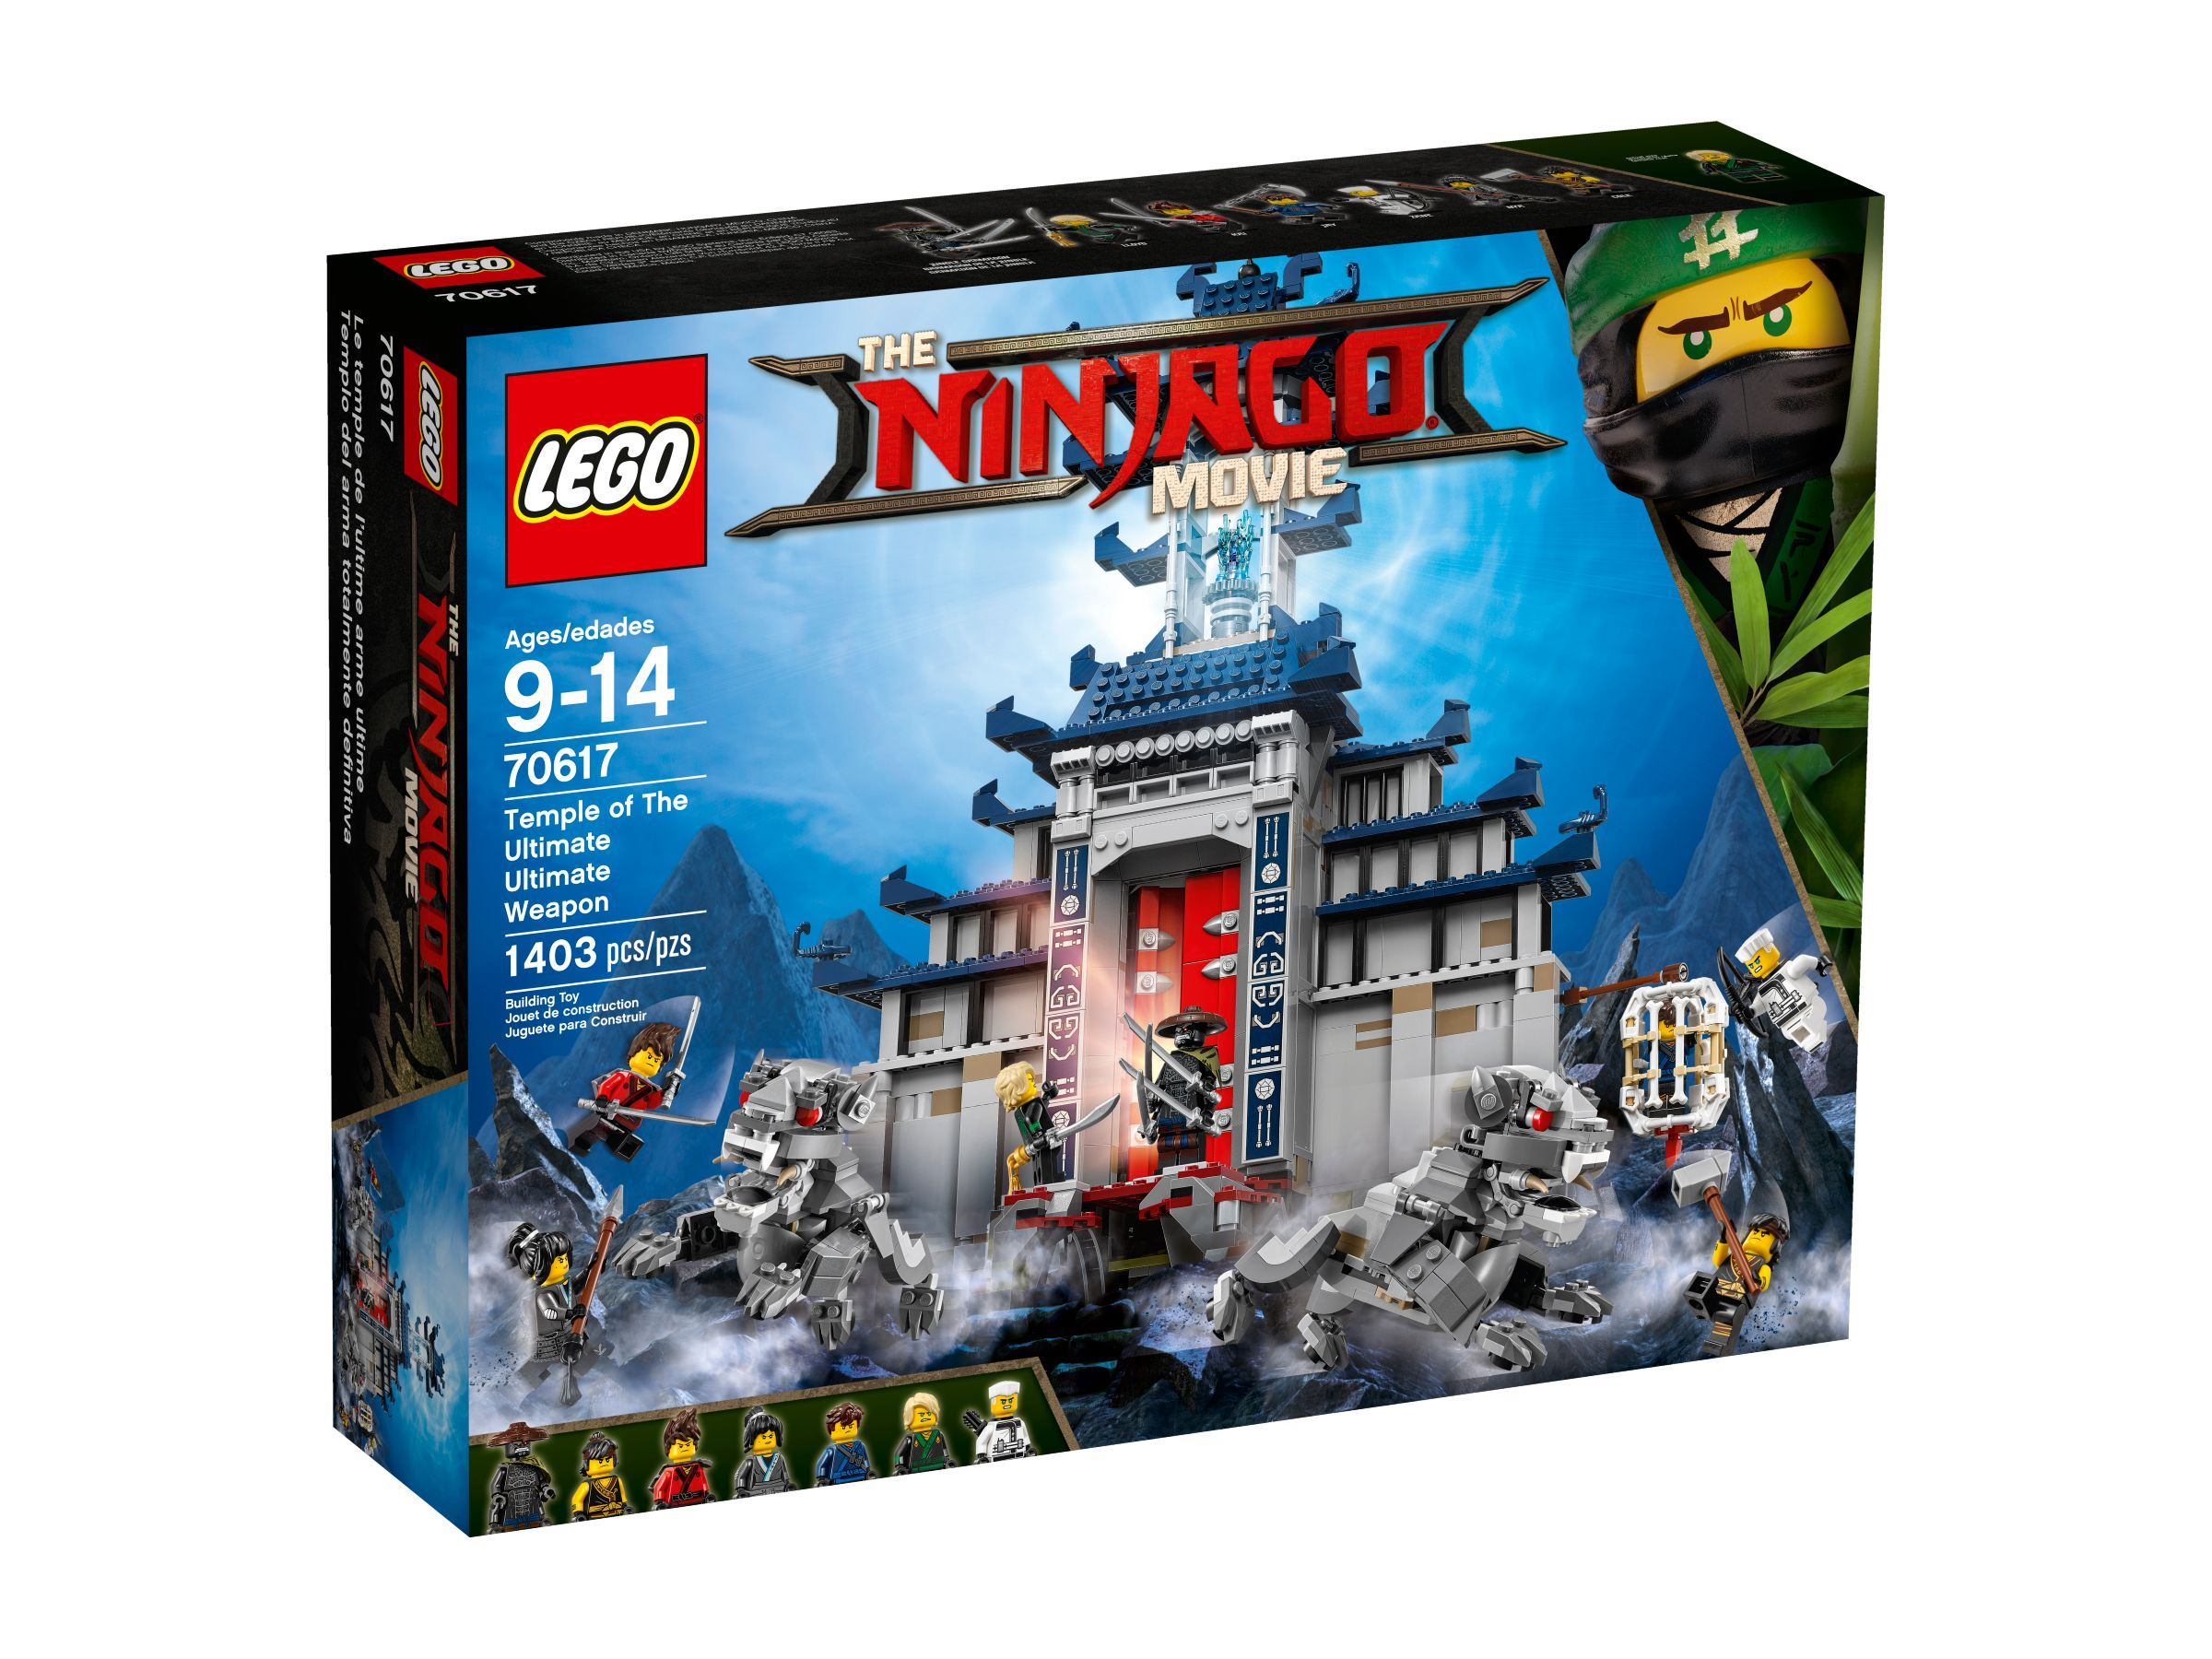 LEGO The LEGO Ninjago Movie 70617 Ultimativ ultimatives Tempel-Versteck LEGO_70617_alt1.jpg